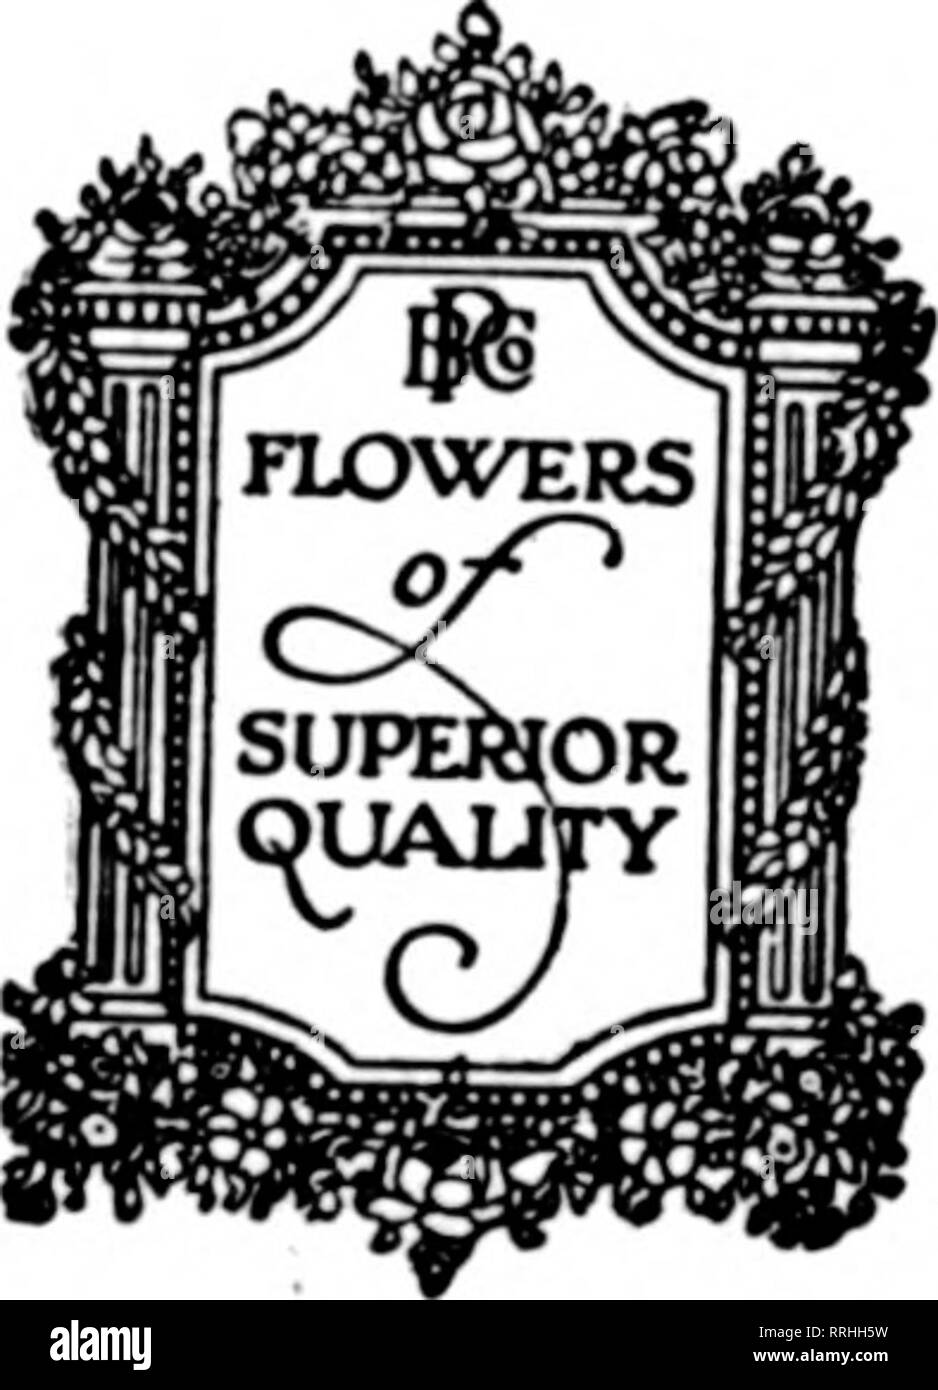 """. Florists' review [microform]. Floriculture. The Rorists^ Review Mat 20, 1920. For MEMO Poehlmann Brothers' shipping Sunday, May 30th. There will be """"Flowers of Superior Quality"""" al we will book orders for shipmen well to keep in mind tha will be observed on Monday, Ma] your late Holiday needs to u Ju^ne Wedding an( for highest quality stod. Poehlmann Br( 6 6 to 7 4 E a s Telephoi"""" CHICAGO,. Please note that these images are extracted from scanned page images that may have been digitally enhanced for readability - coloration and appearance of these illustrations may not perfect - Stock Image"""